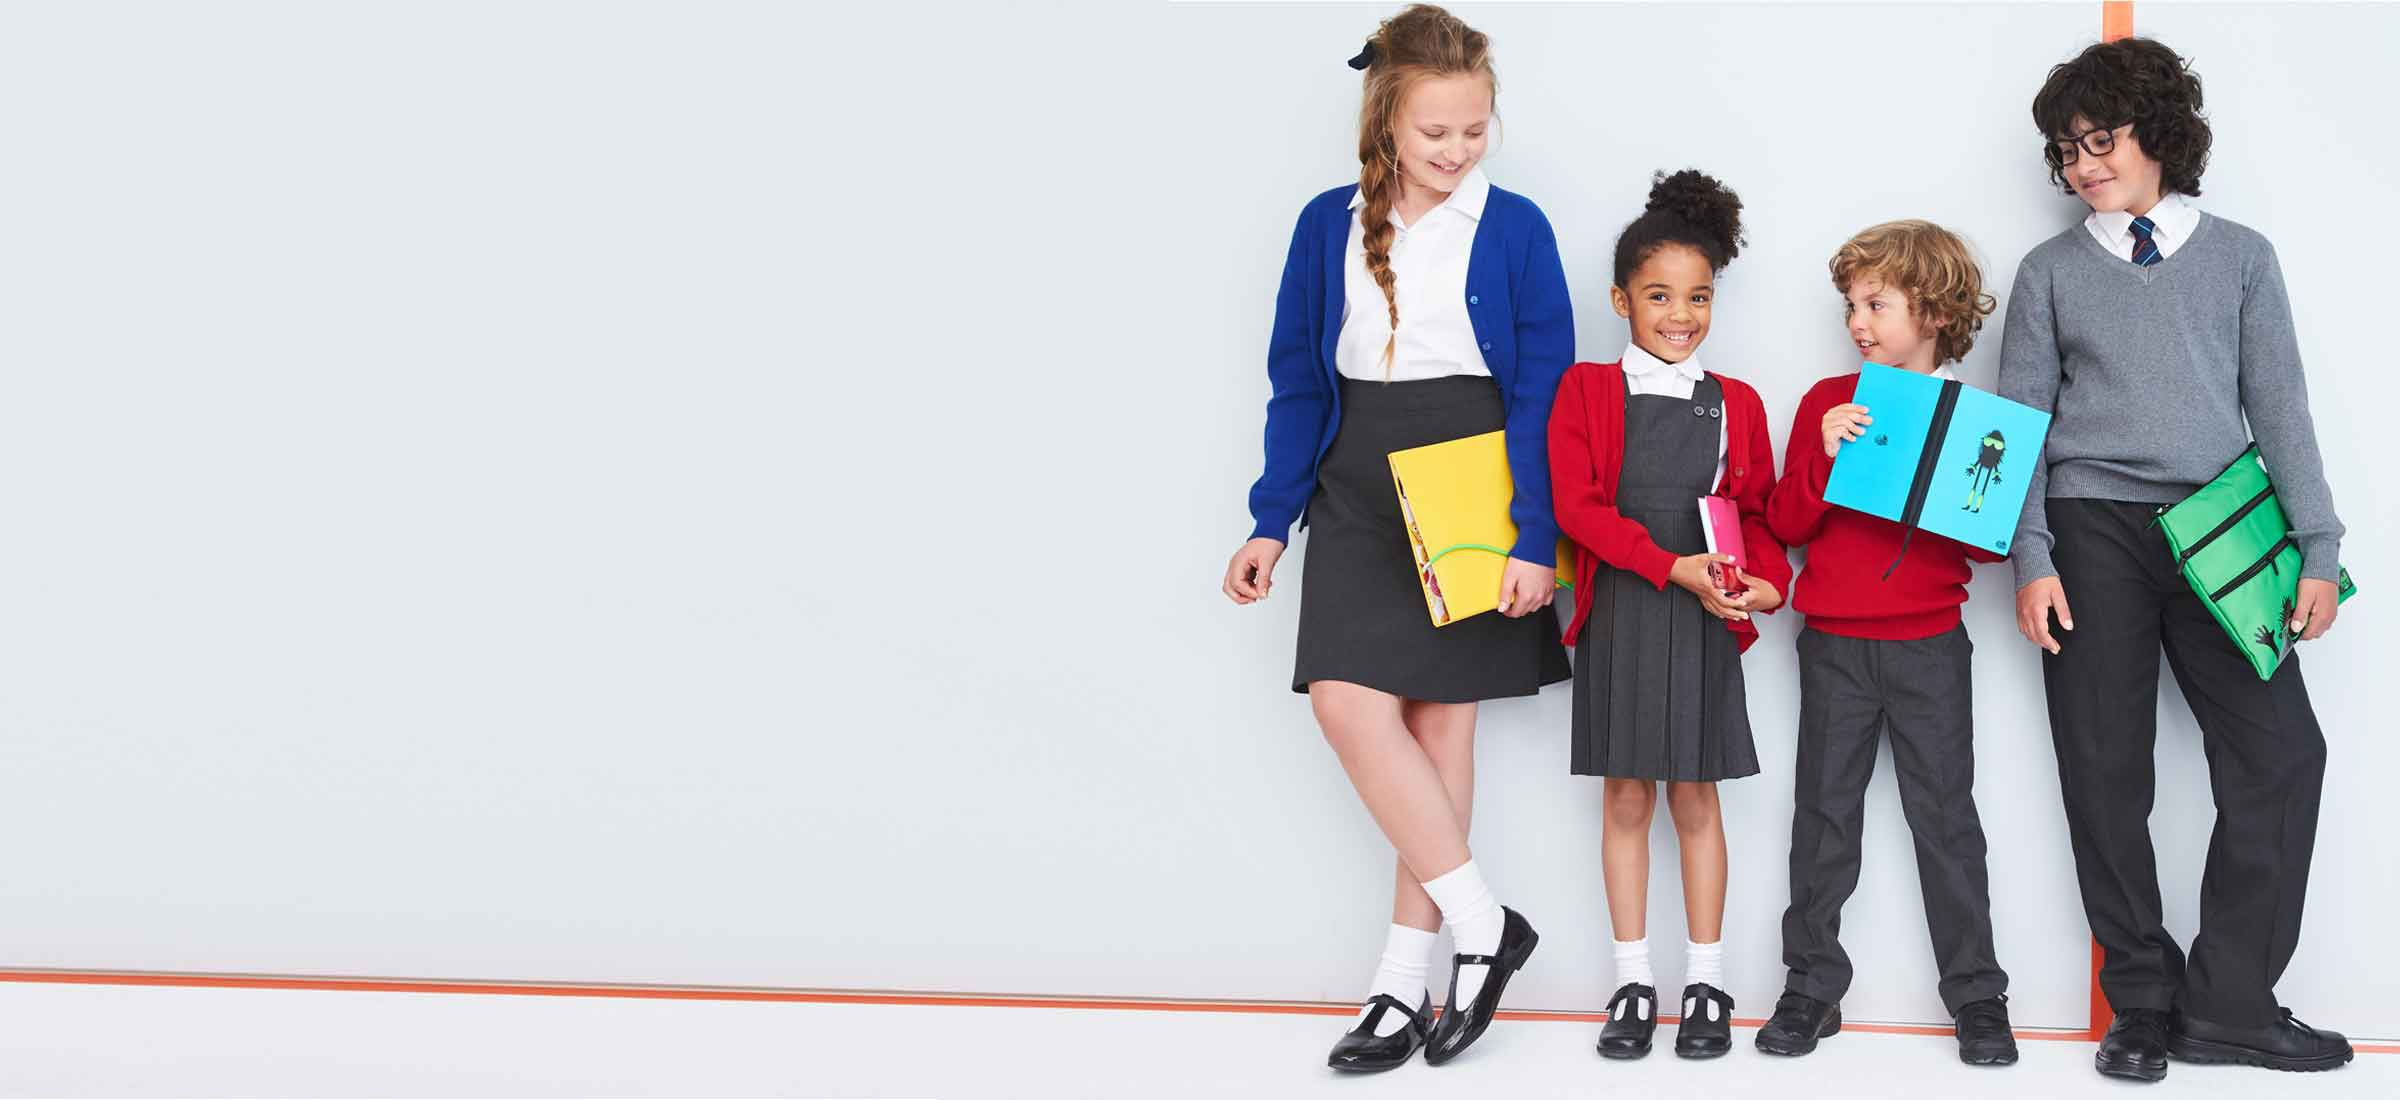 1db707d2544 OUR SCHOOL UNIFORM FEATURES